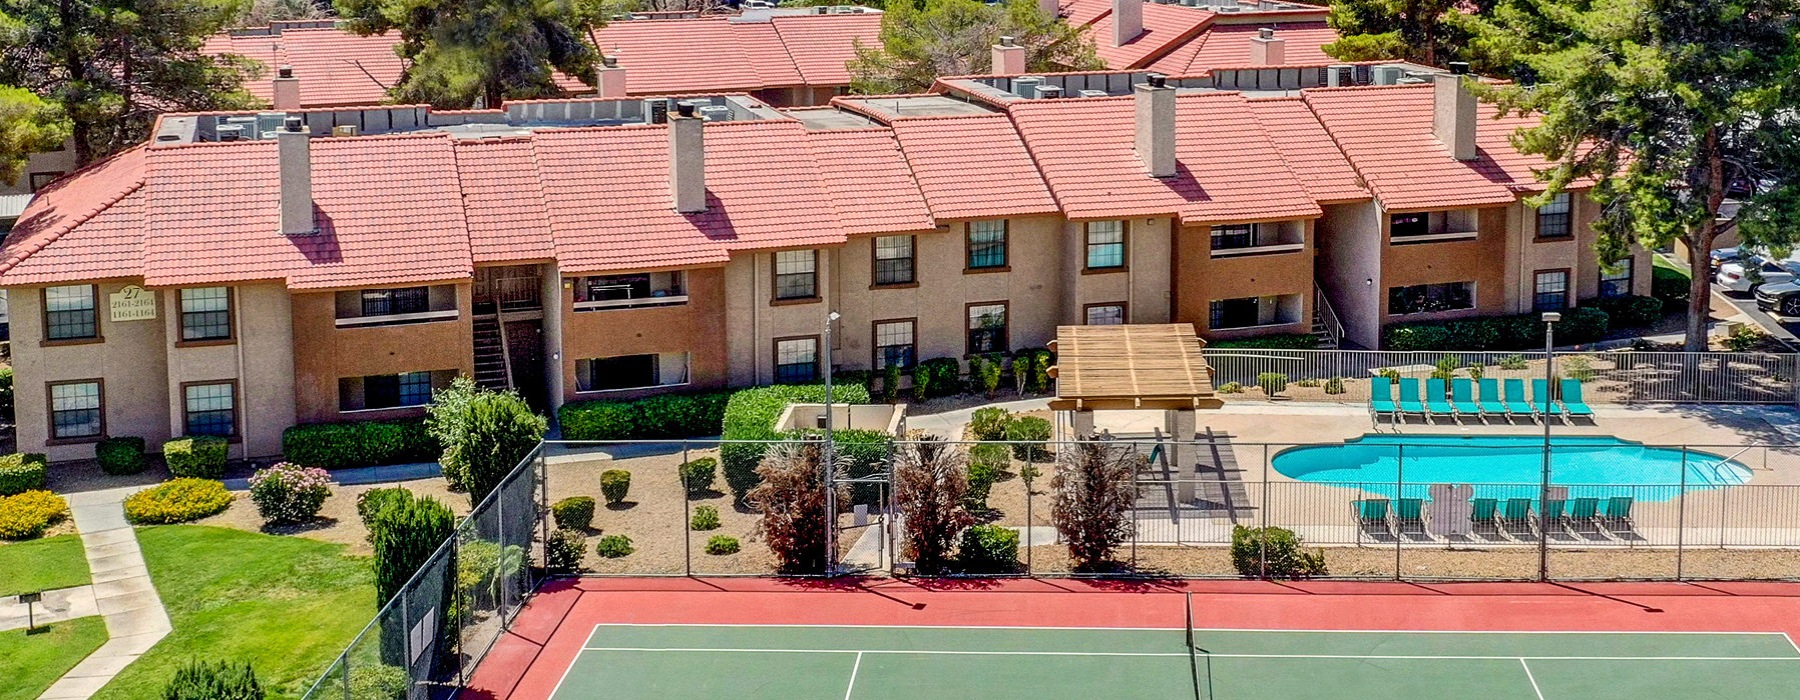 view of tennis courts and pool in front of Rancho Del Sol